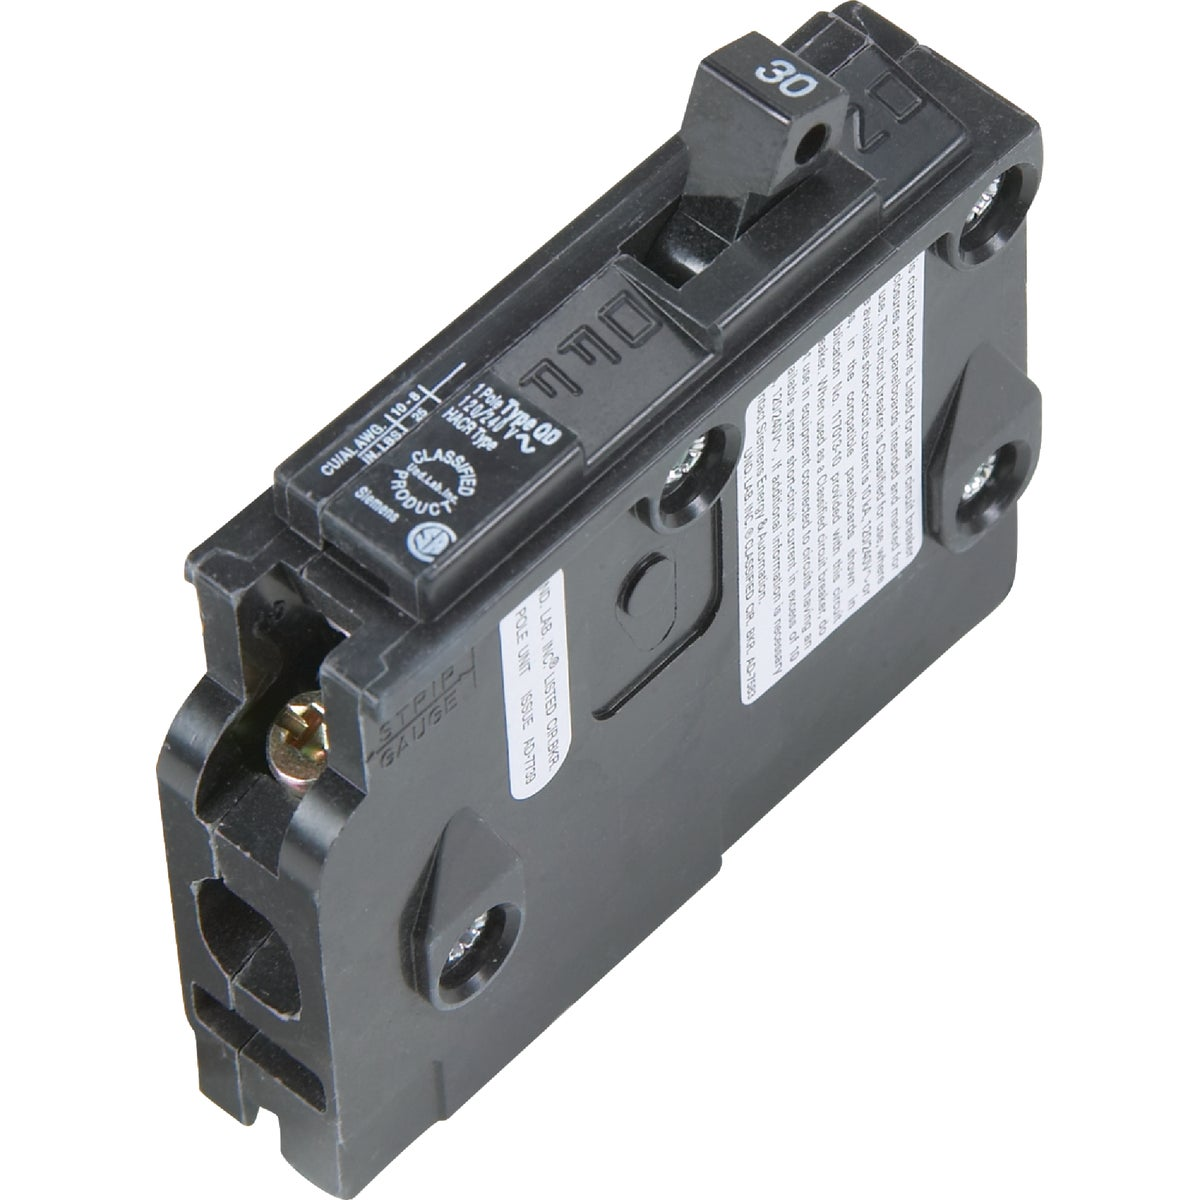 30A SP CIRCUIT BREAKER - D130 by Connecticut Electric